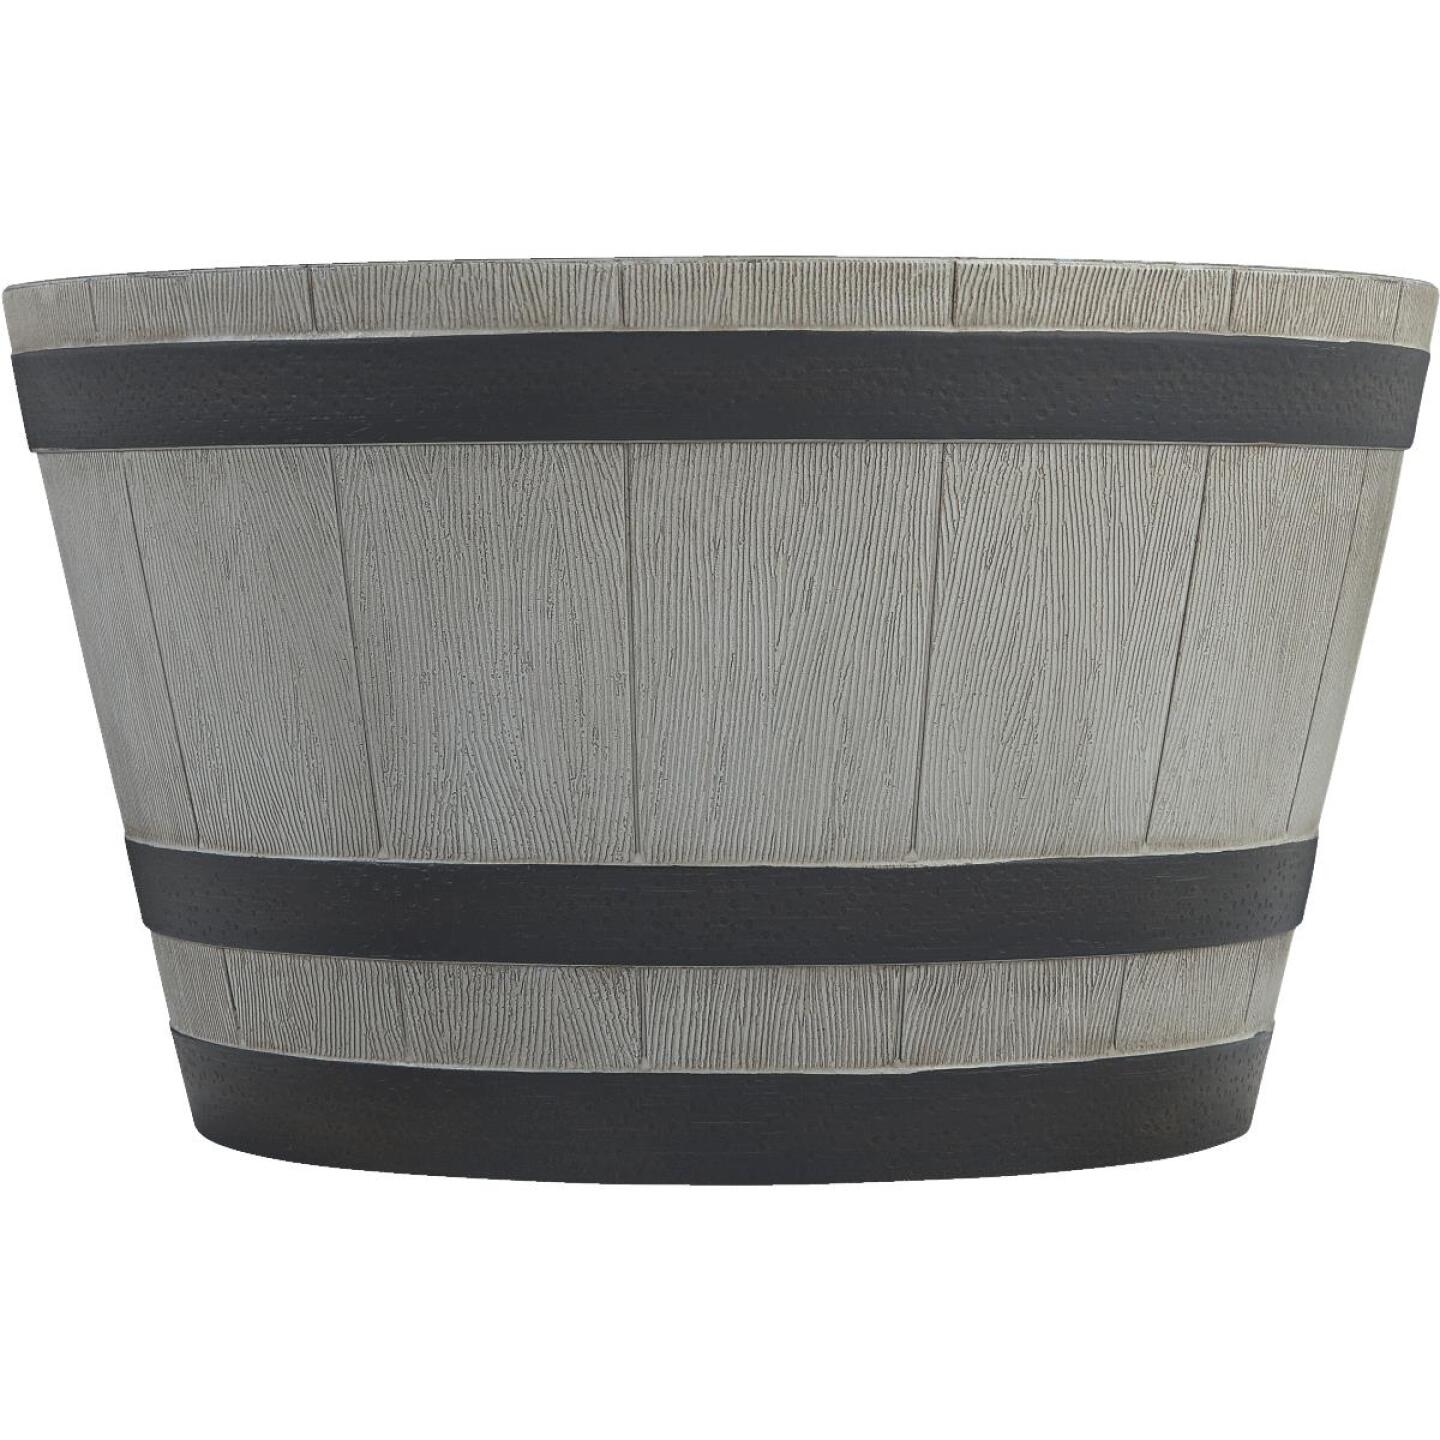 Southern Patio 13-1/2 In. H. x 22-1/2 In. Dia. Birchwood High-Density Resin Traditional Whiskey Barrel Planter Image 2